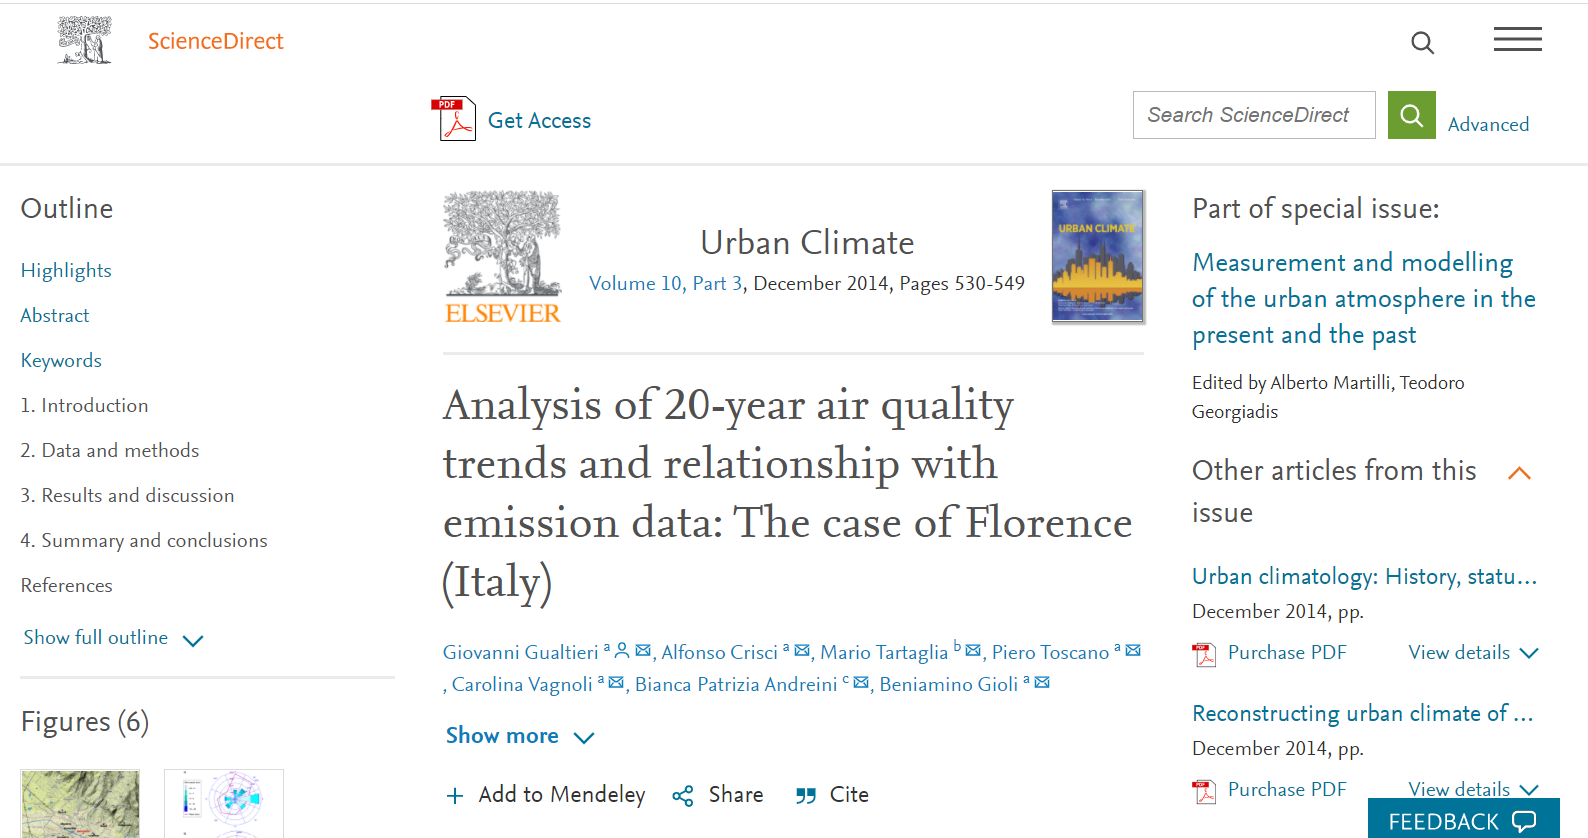 Analysis of 20-year air quality trends and relationship with emission data: The case of Florence (Italy).